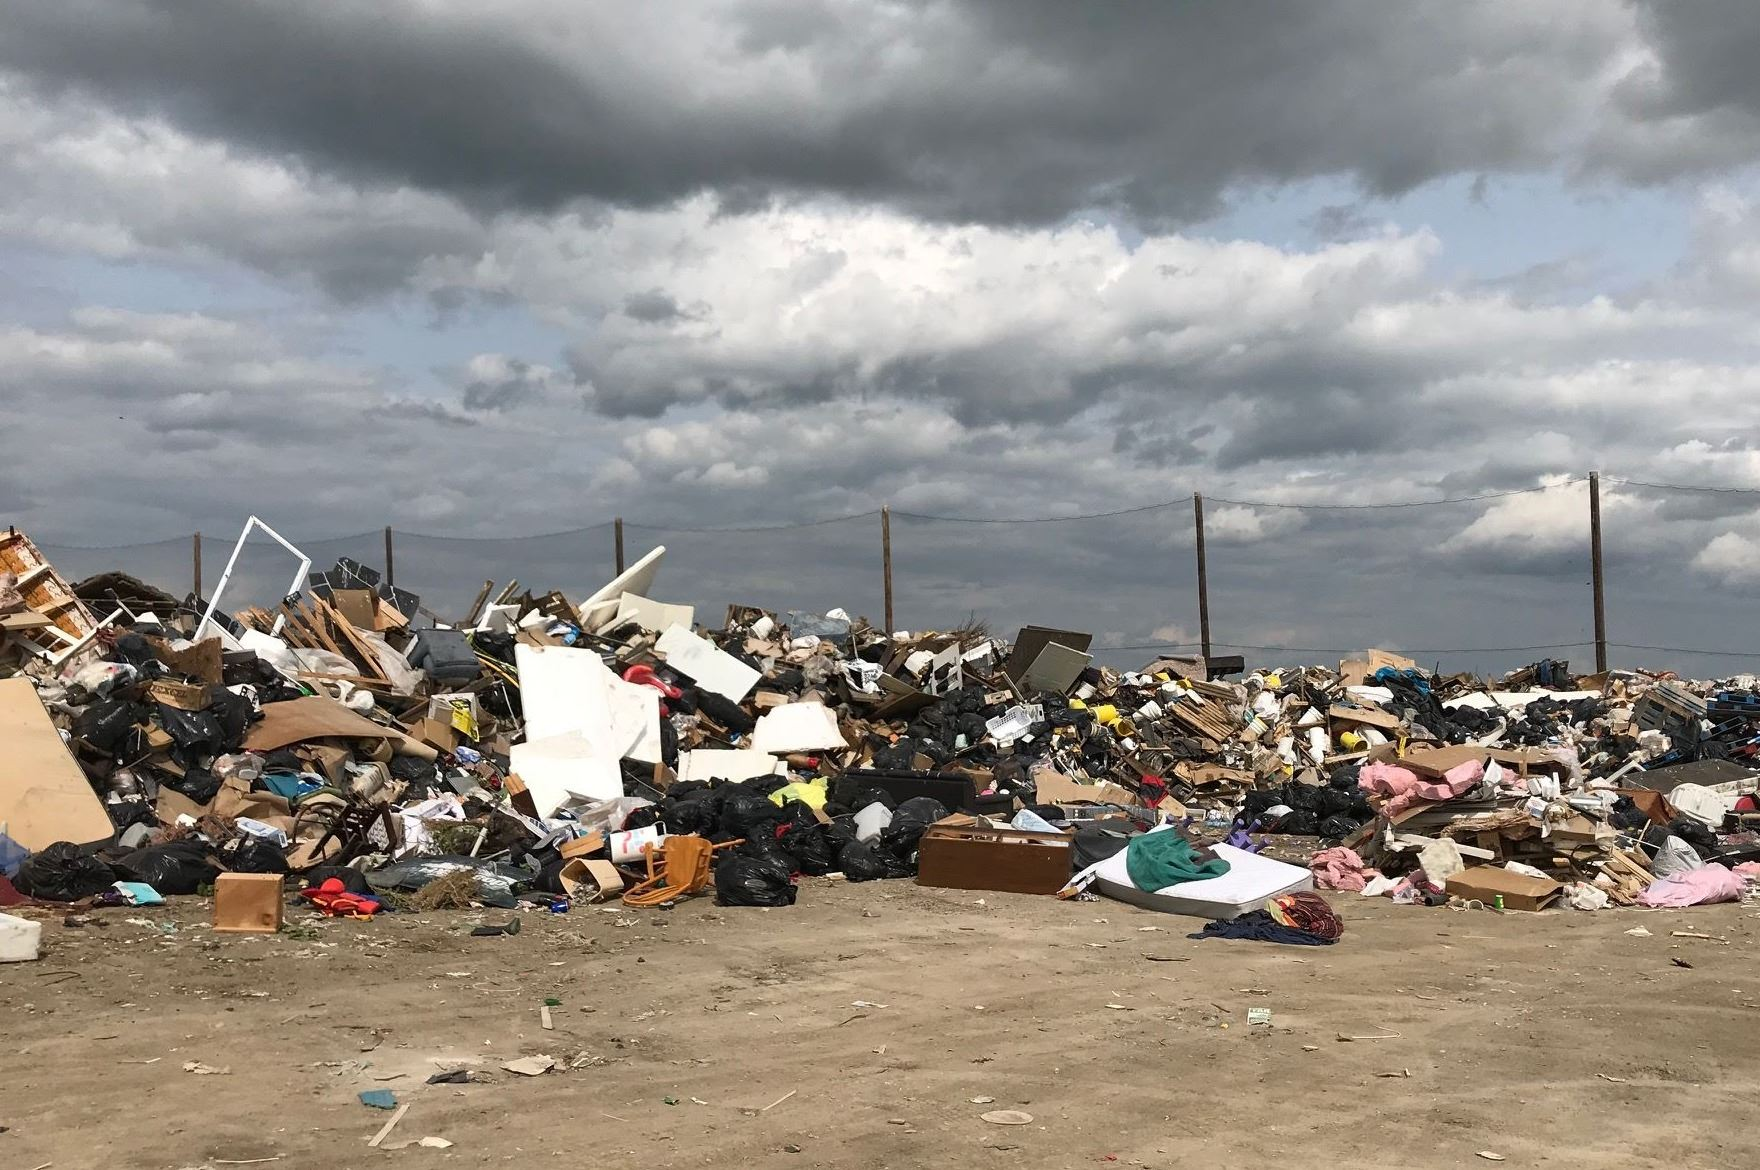 Image of landfill